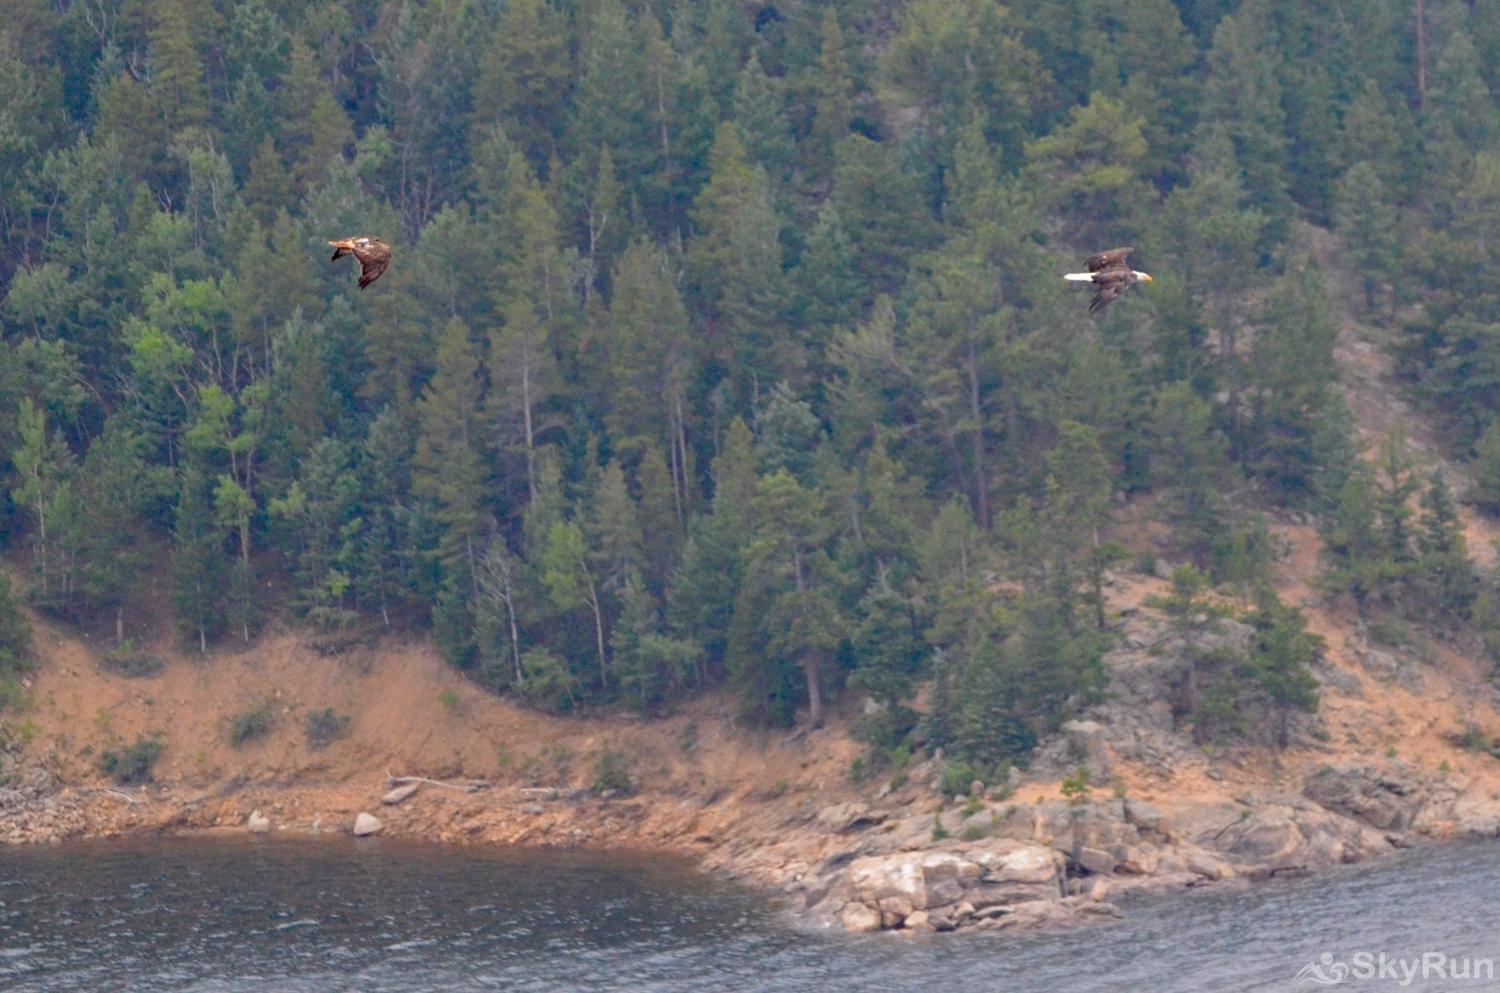 Timberline Haus Eagles flying over Lake